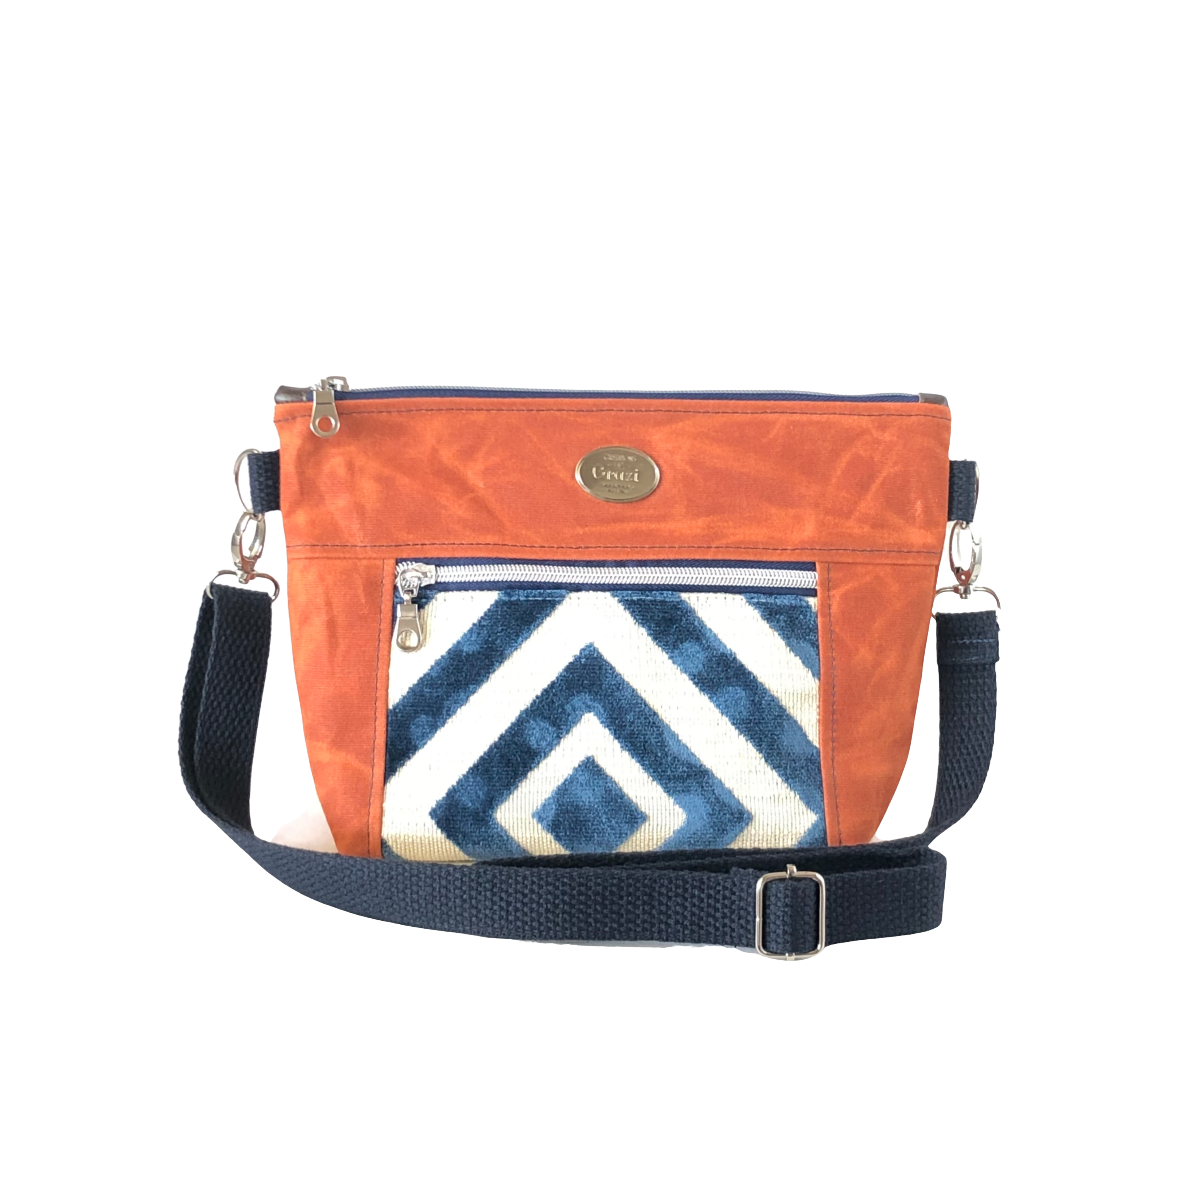 Wax Canvas Faux Leather Crossbody Bag - Burnt Orange/Velvet Navy-Ivory